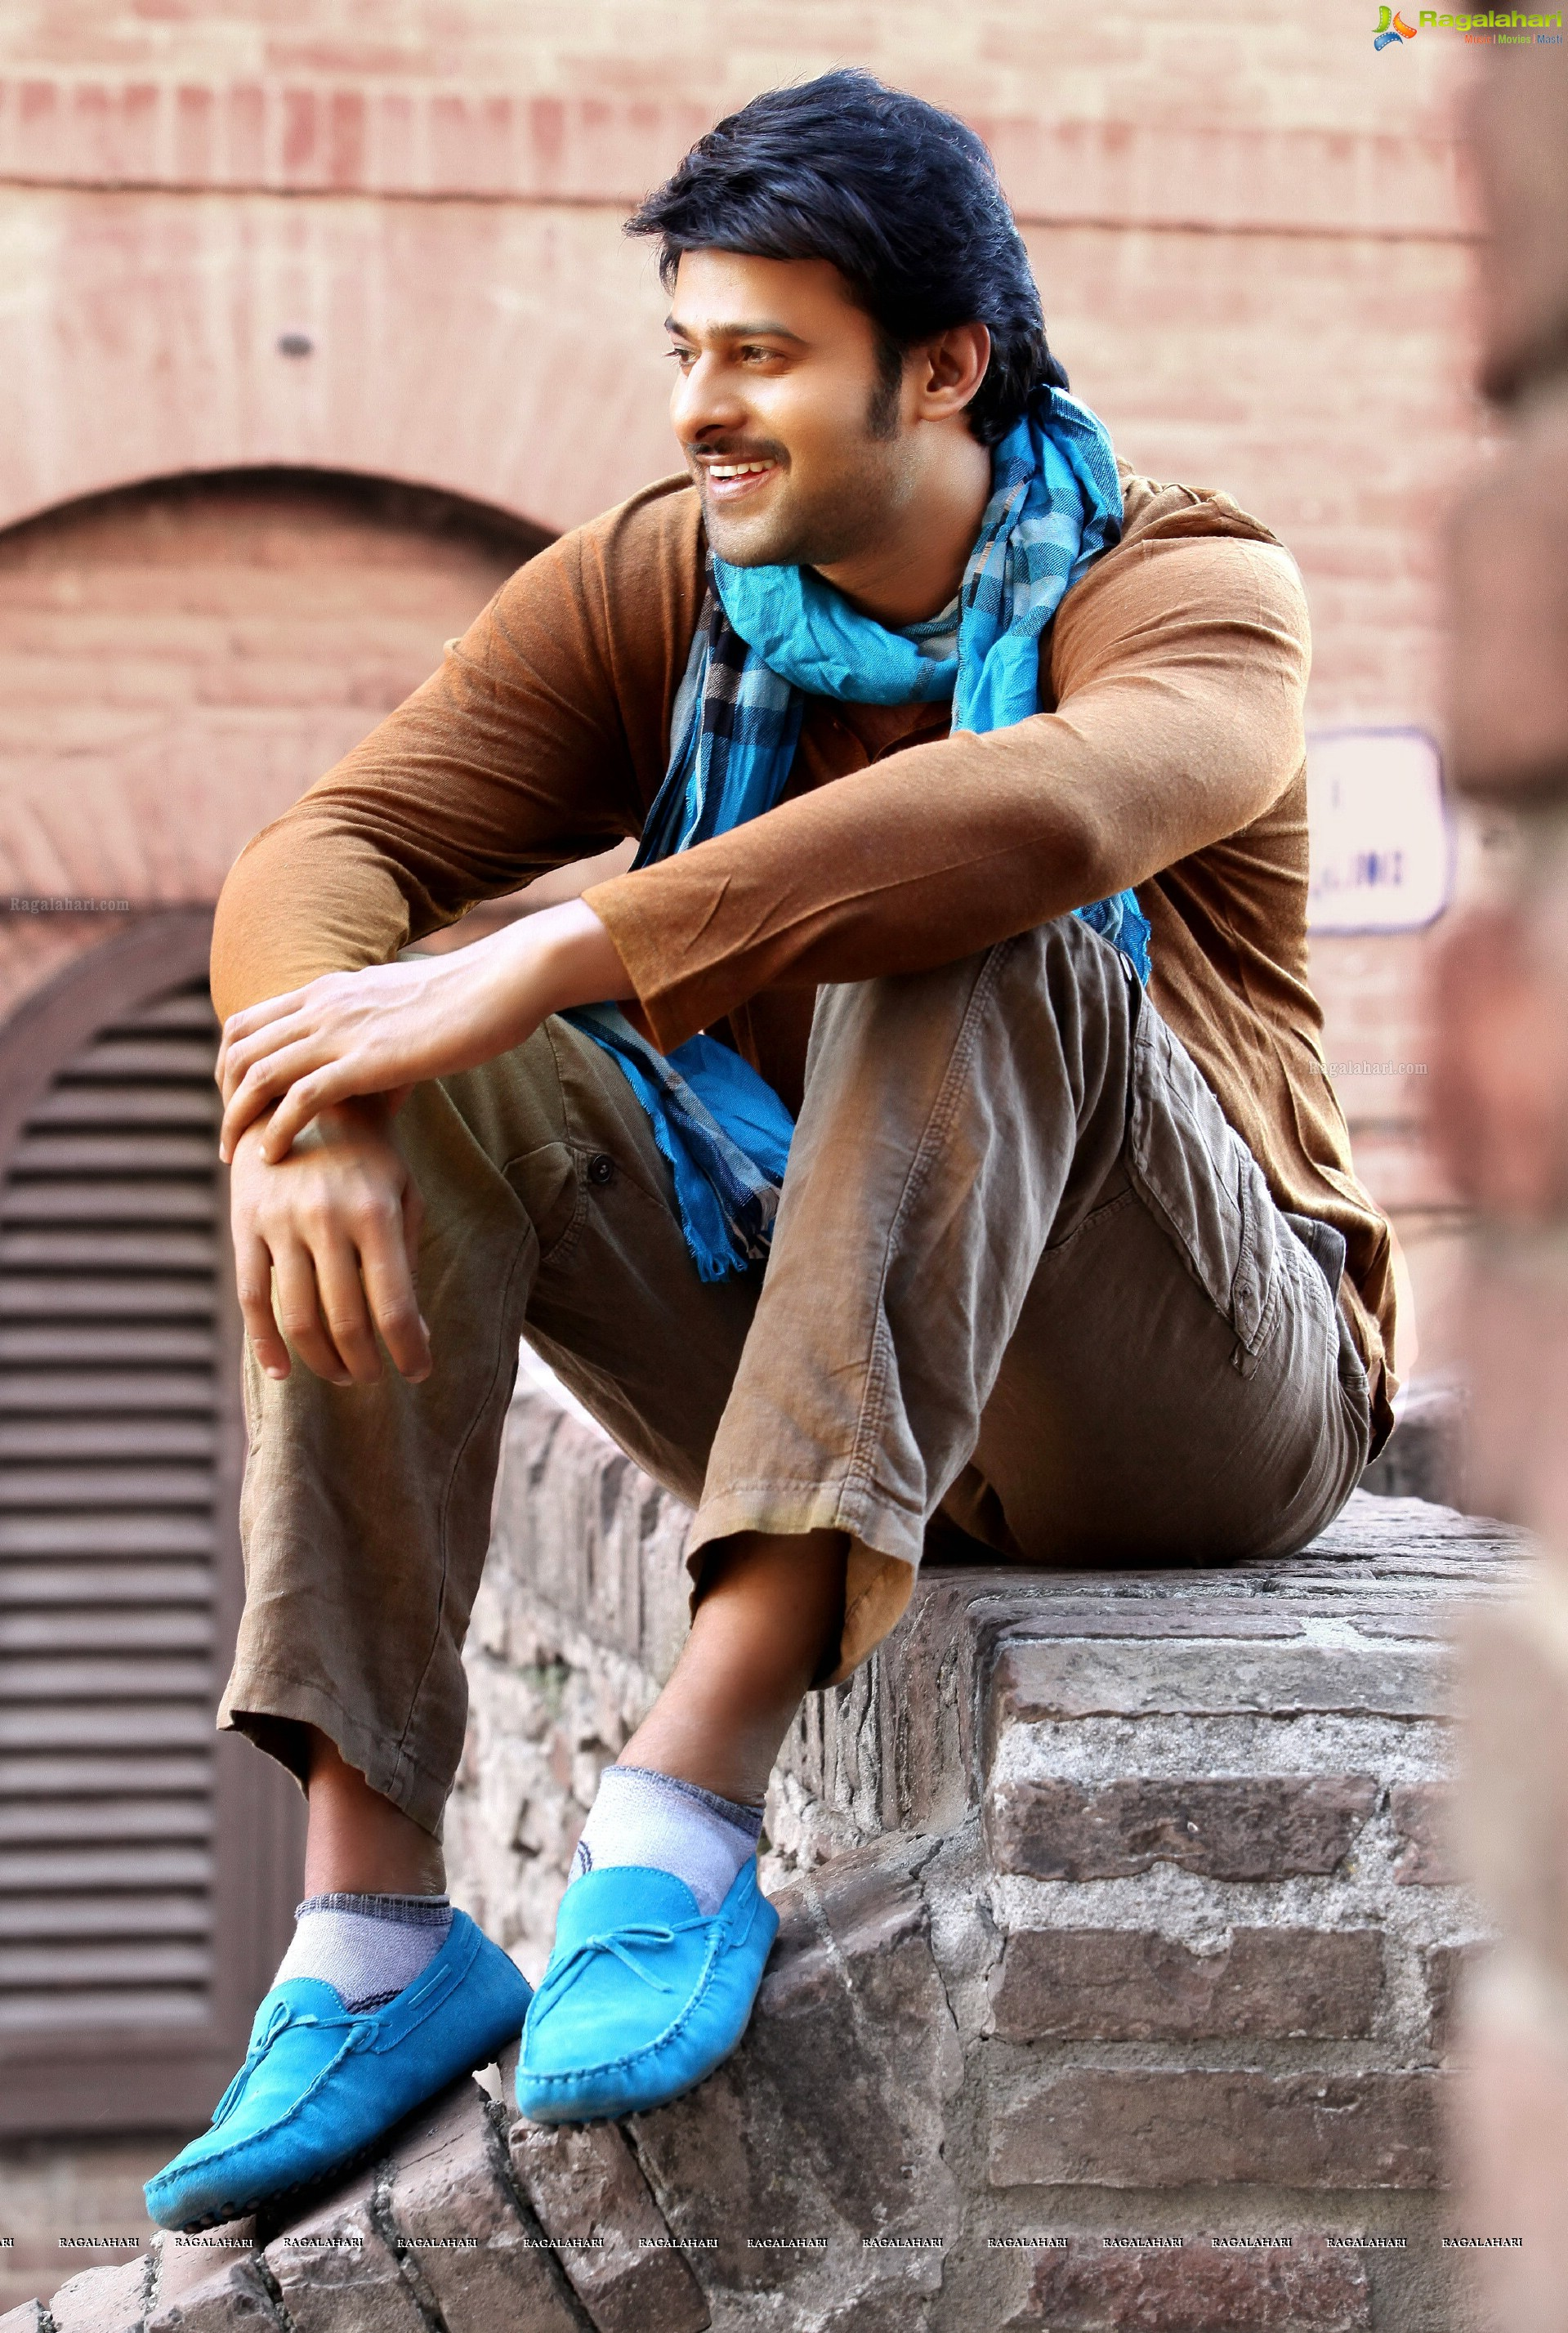 prabhas (hd) image 6 | latest tollywood actor photos,images, photos